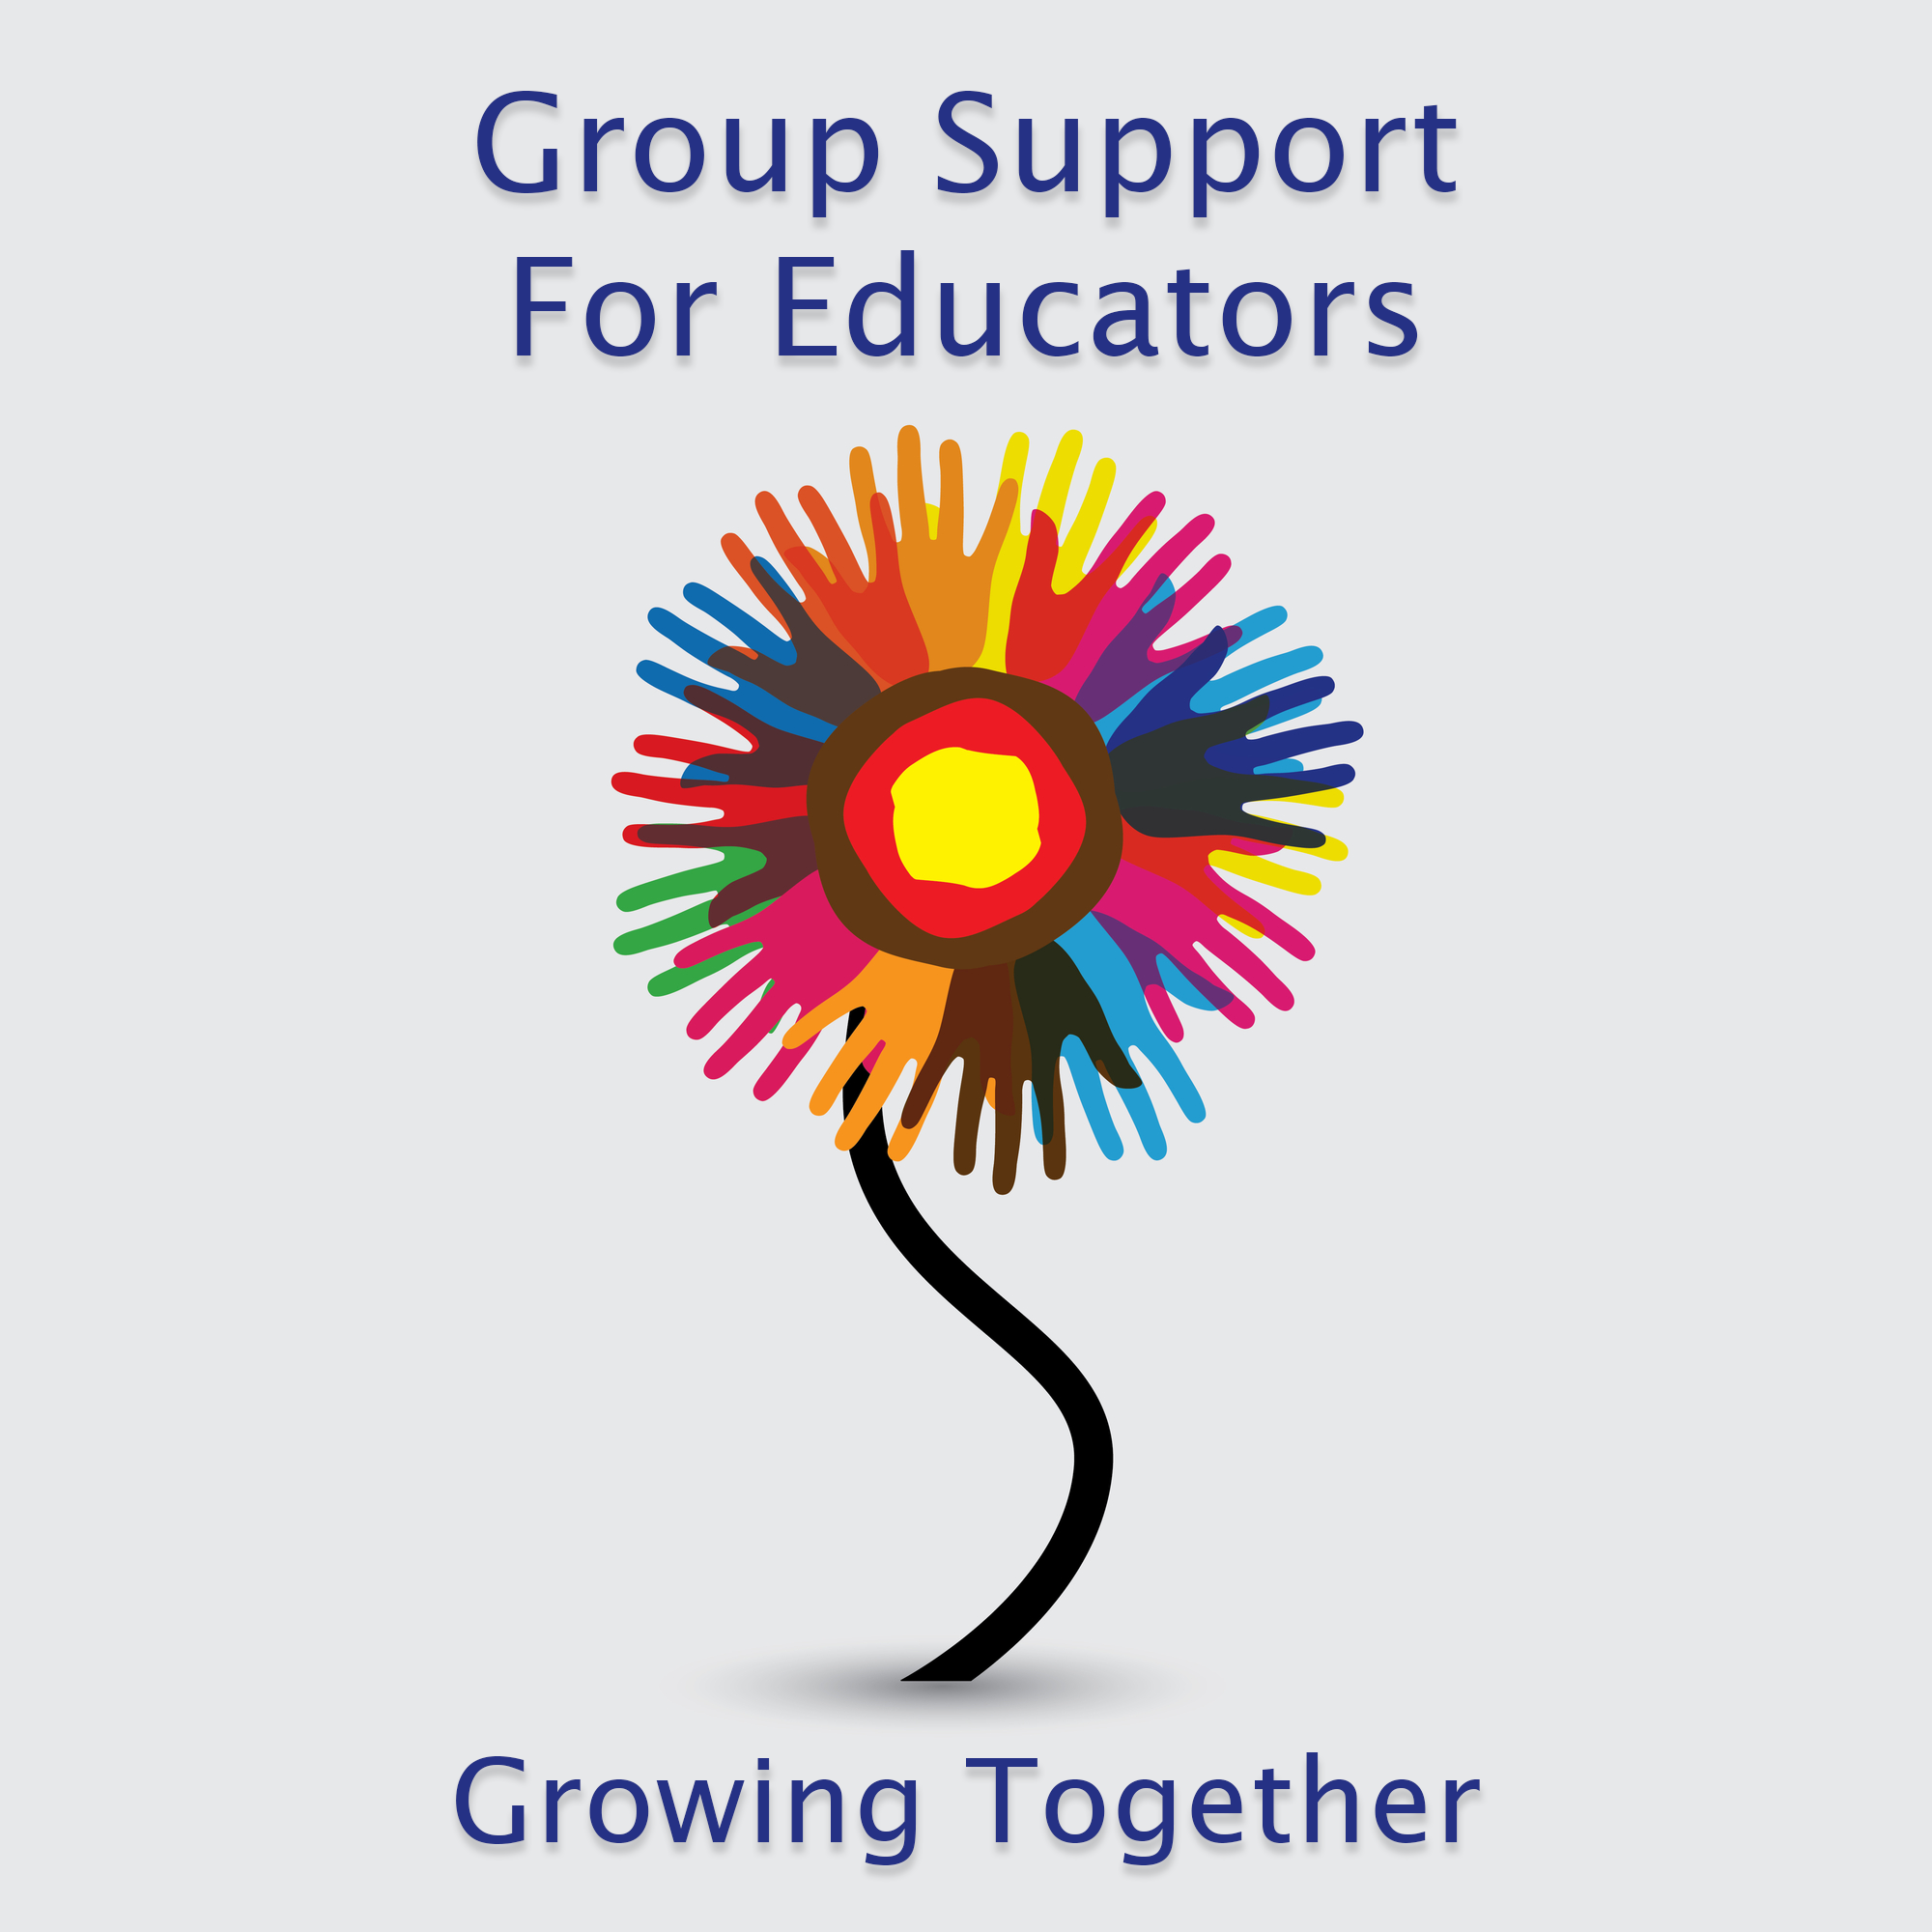 Group Support For Educators